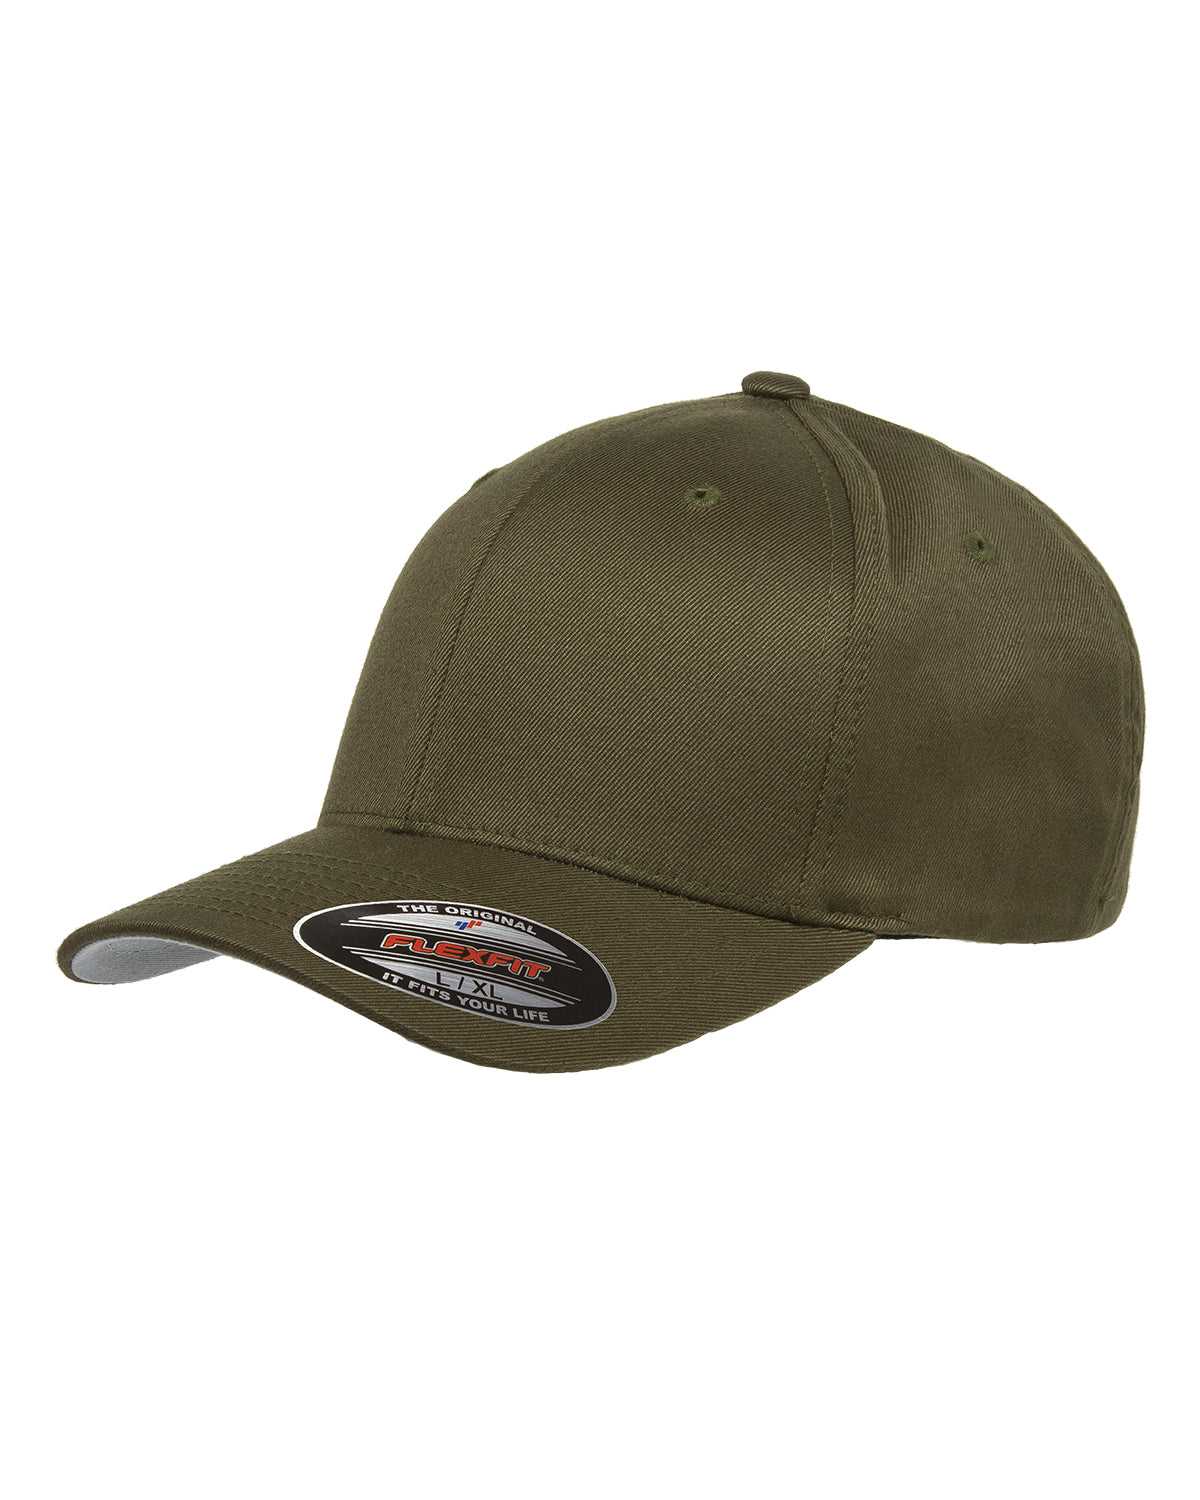 Flexfit Adult Wooly 6-Panel Cap 6277